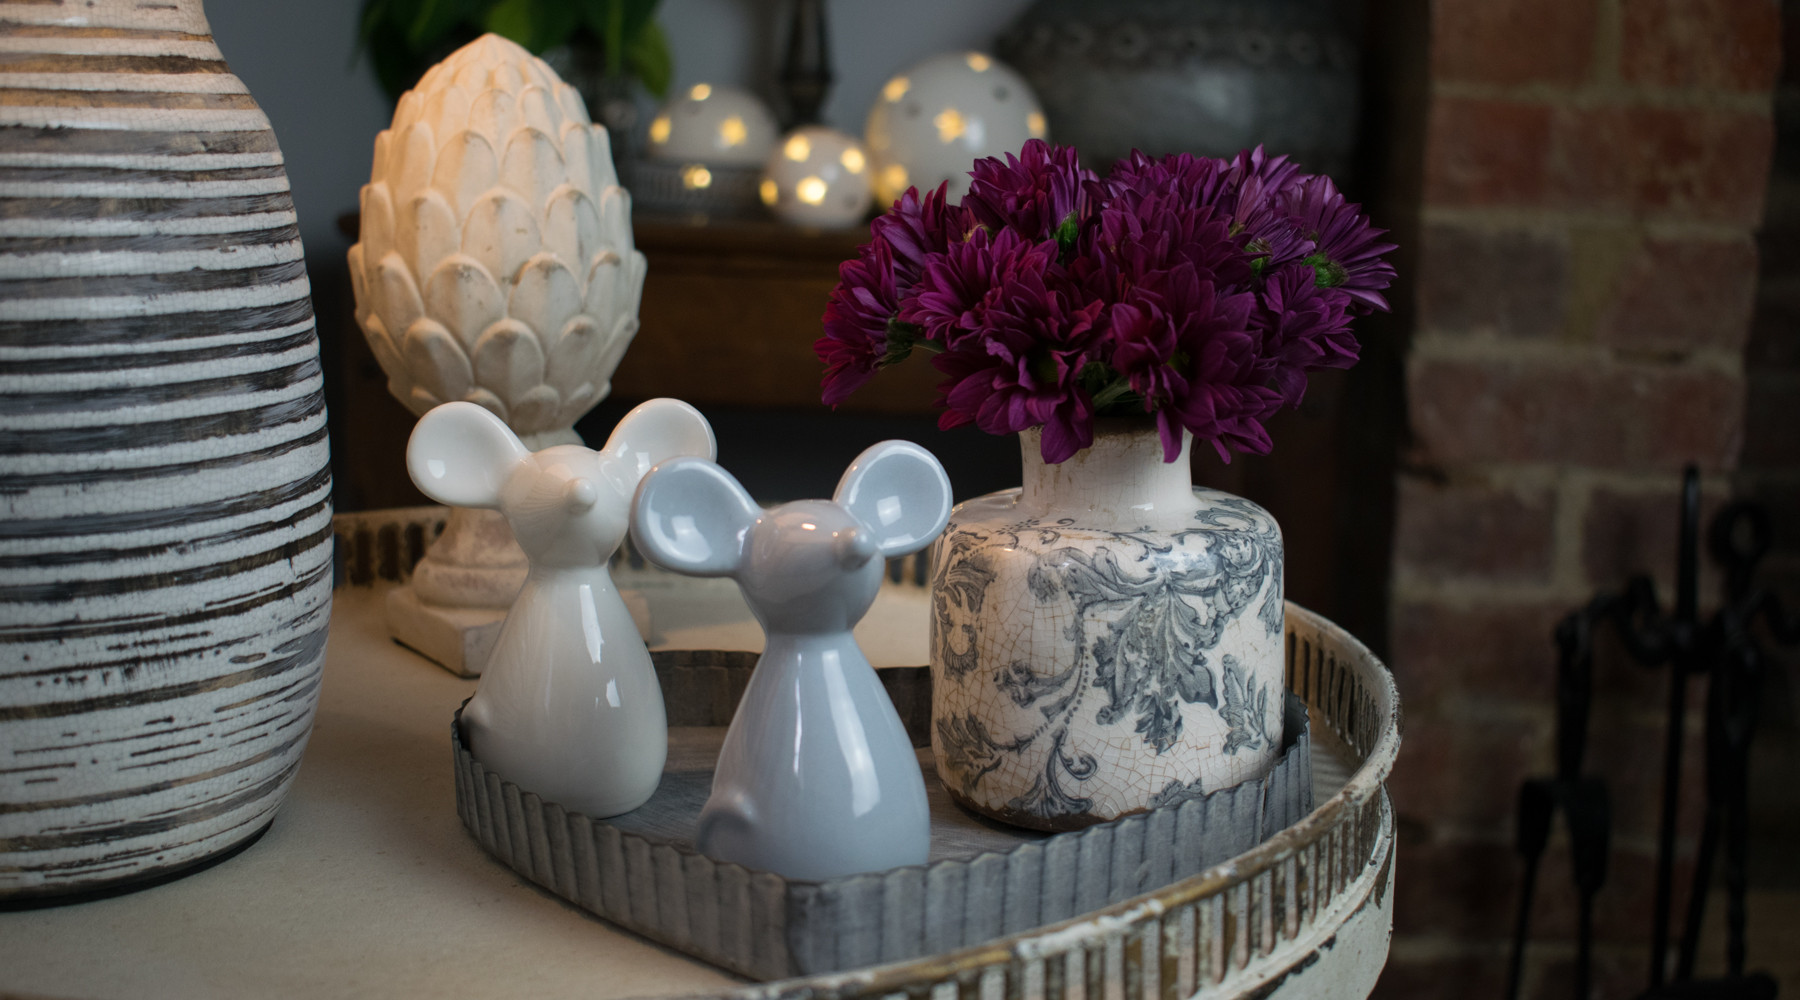 Ceramic Mice, with Artichoke and French-Style Vase